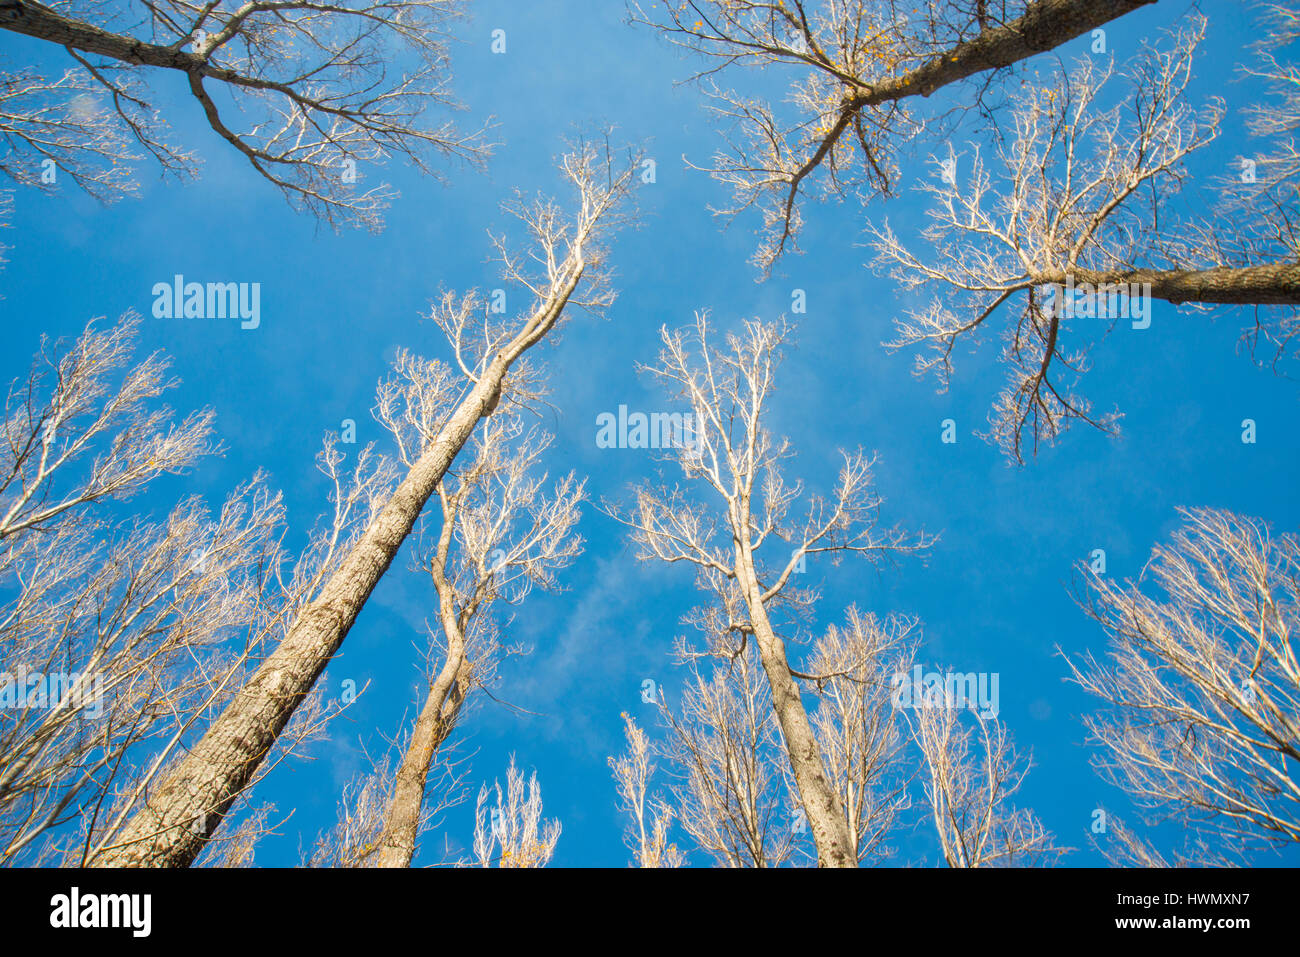 Tree trunks in winter. View from below. - Stock Image